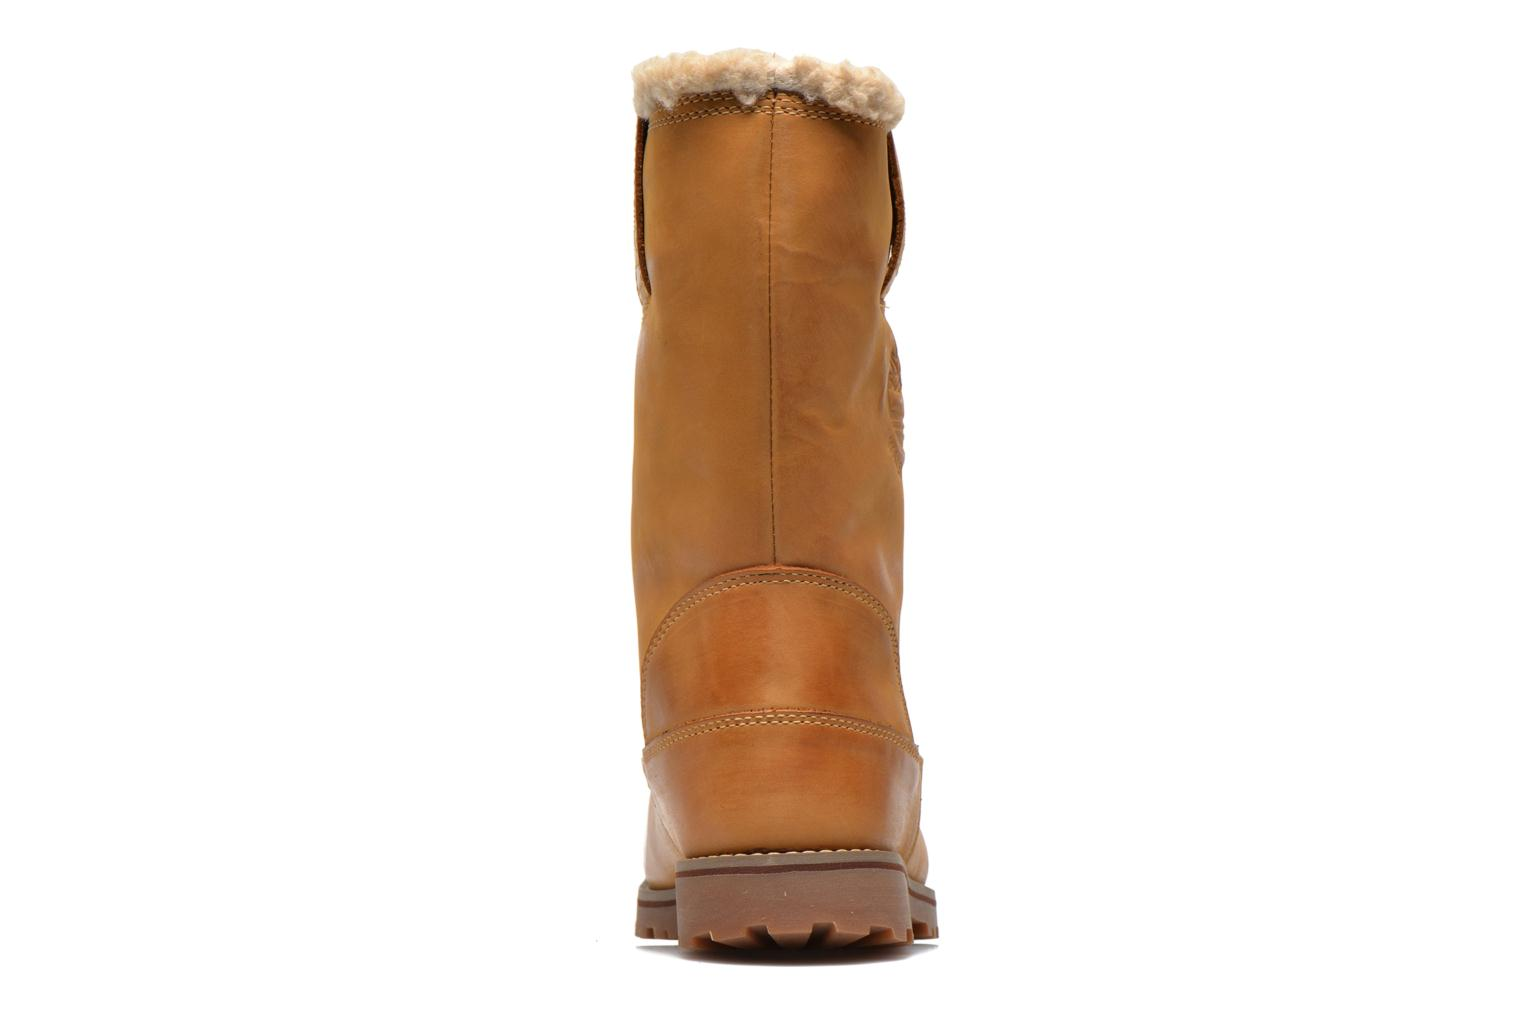 Bottes Timberland Asphtrl 8Inwp Shrl W Beige vue droite